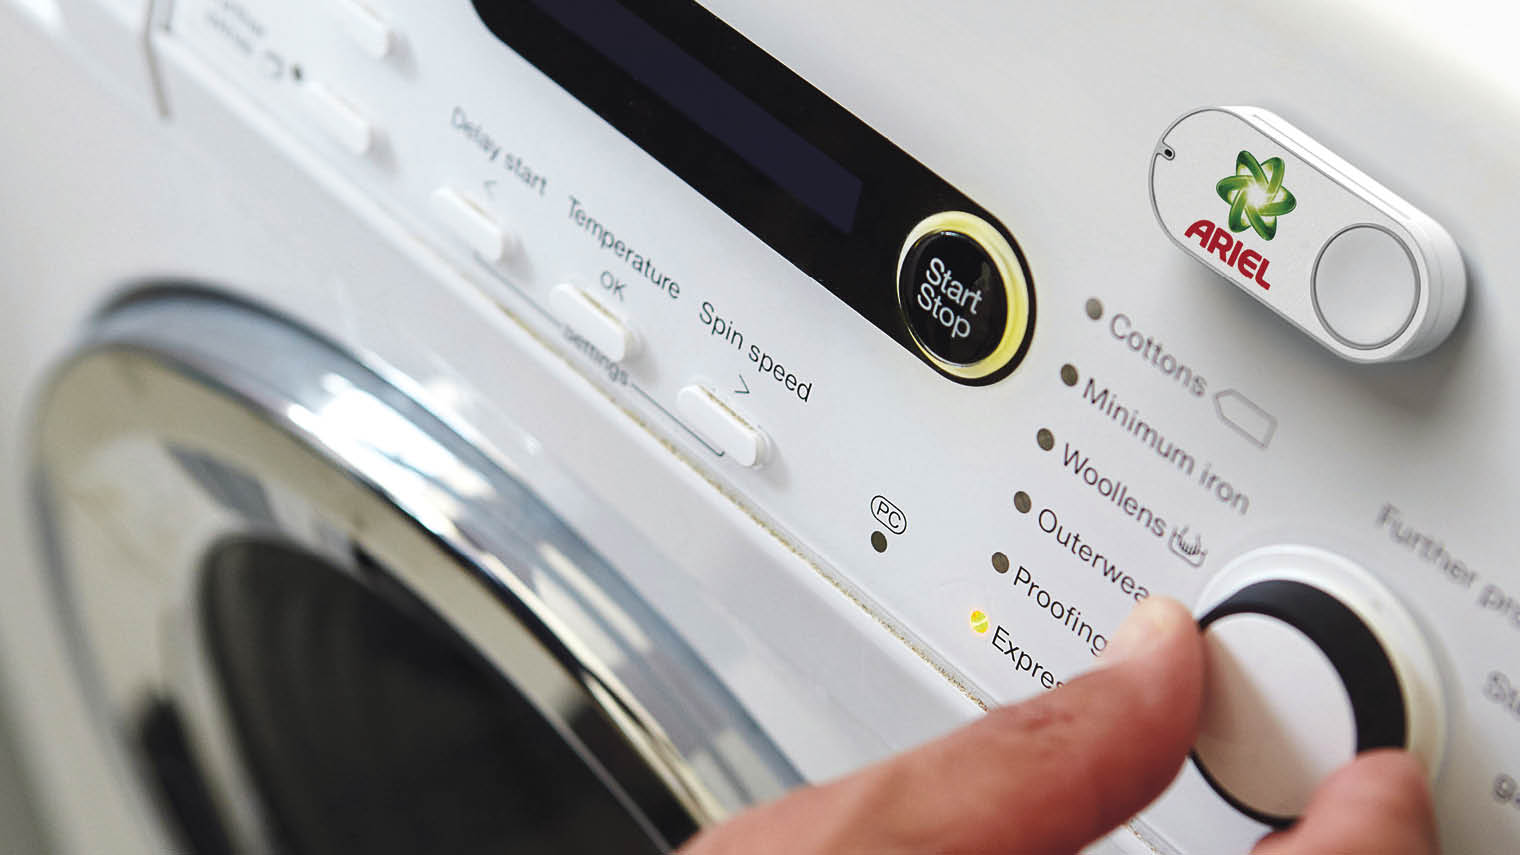 Amazon's Dash buttons are wi-fi connected devices to reorder products at a place convenient to the customer